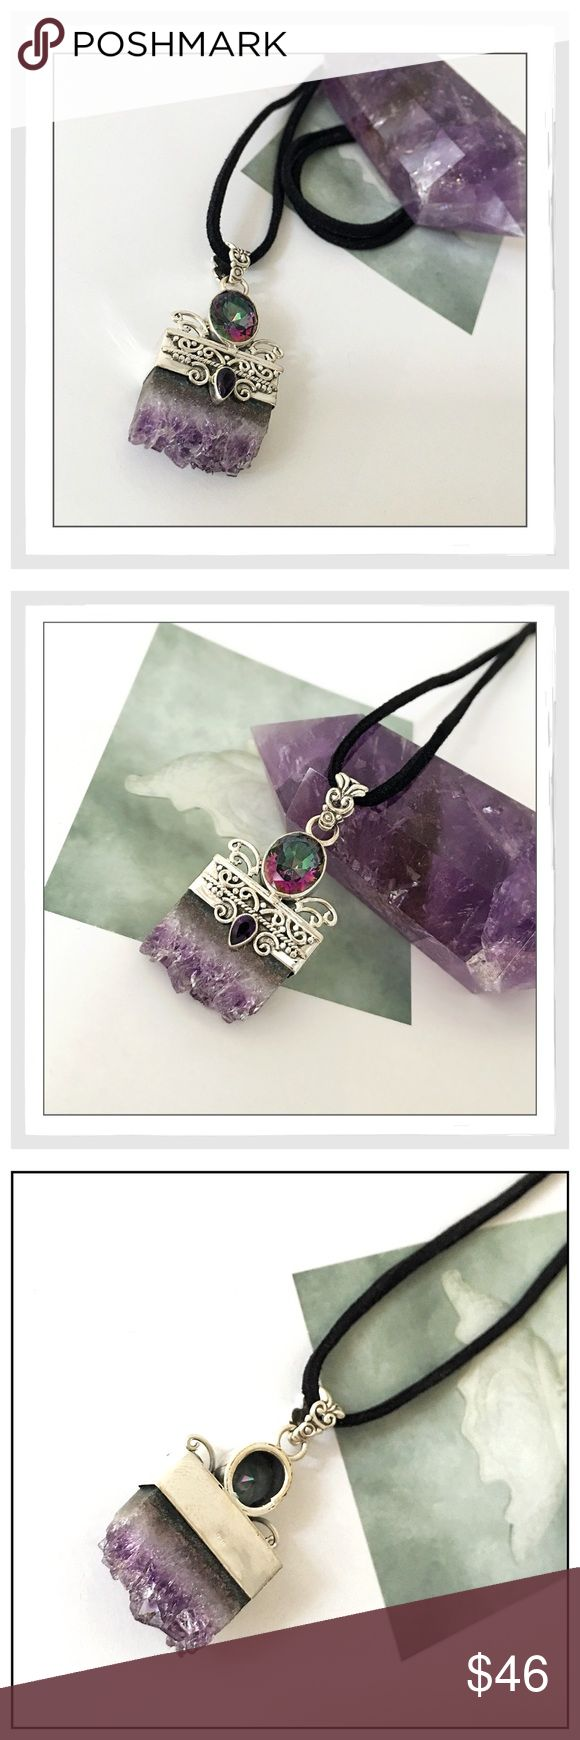 ✨SS 925 Amethyst Stalactite Healing Necklace✨ ✨Beautiful and Vibrant Natural Amethyst has the ability to transform lower energies into higher energies and acts as a healer at all levels of the mind, body, and spirit✨The healing powers of Amethyst date as far back as the Greeks who believed Amethyst protected a person from the intoxicating effects of alcohol✨Amethyst correlates to the crown chakra✨Amethyst acts as a natural form of stress relief✨This crystal attracts positive energy while…